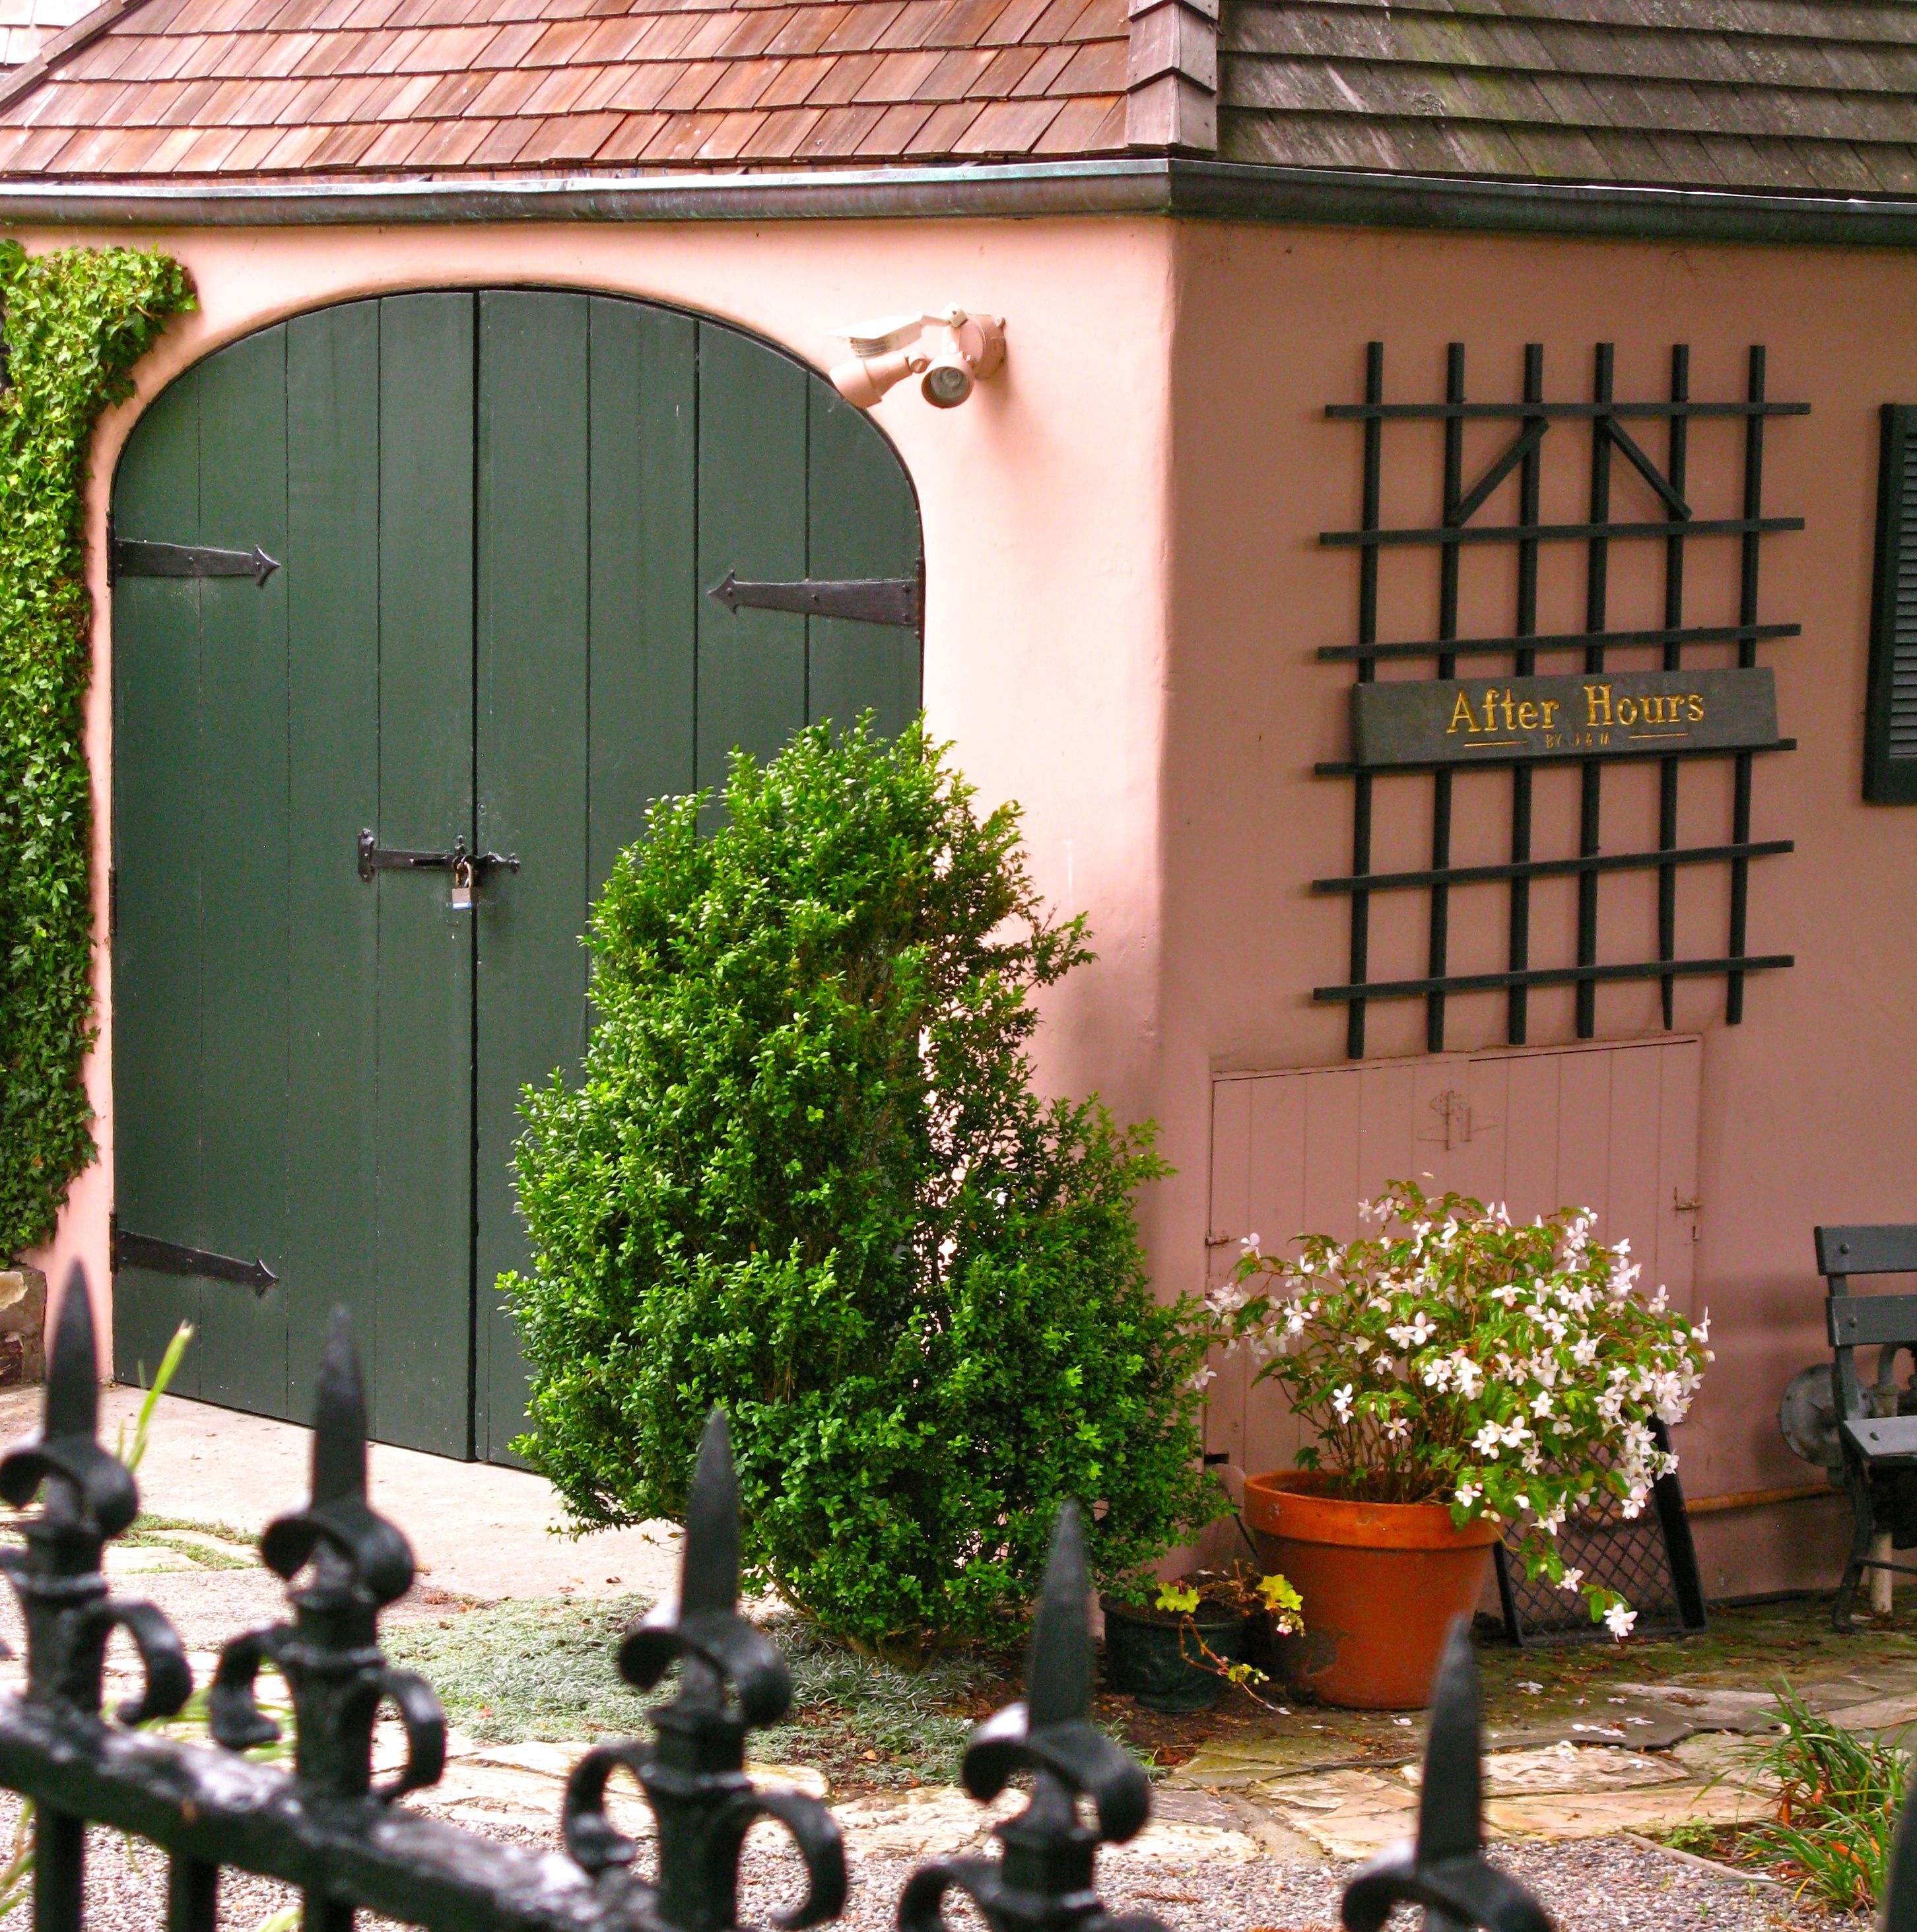 Quaint Doorsimages Hasenyger House A French Tudor Cottage By